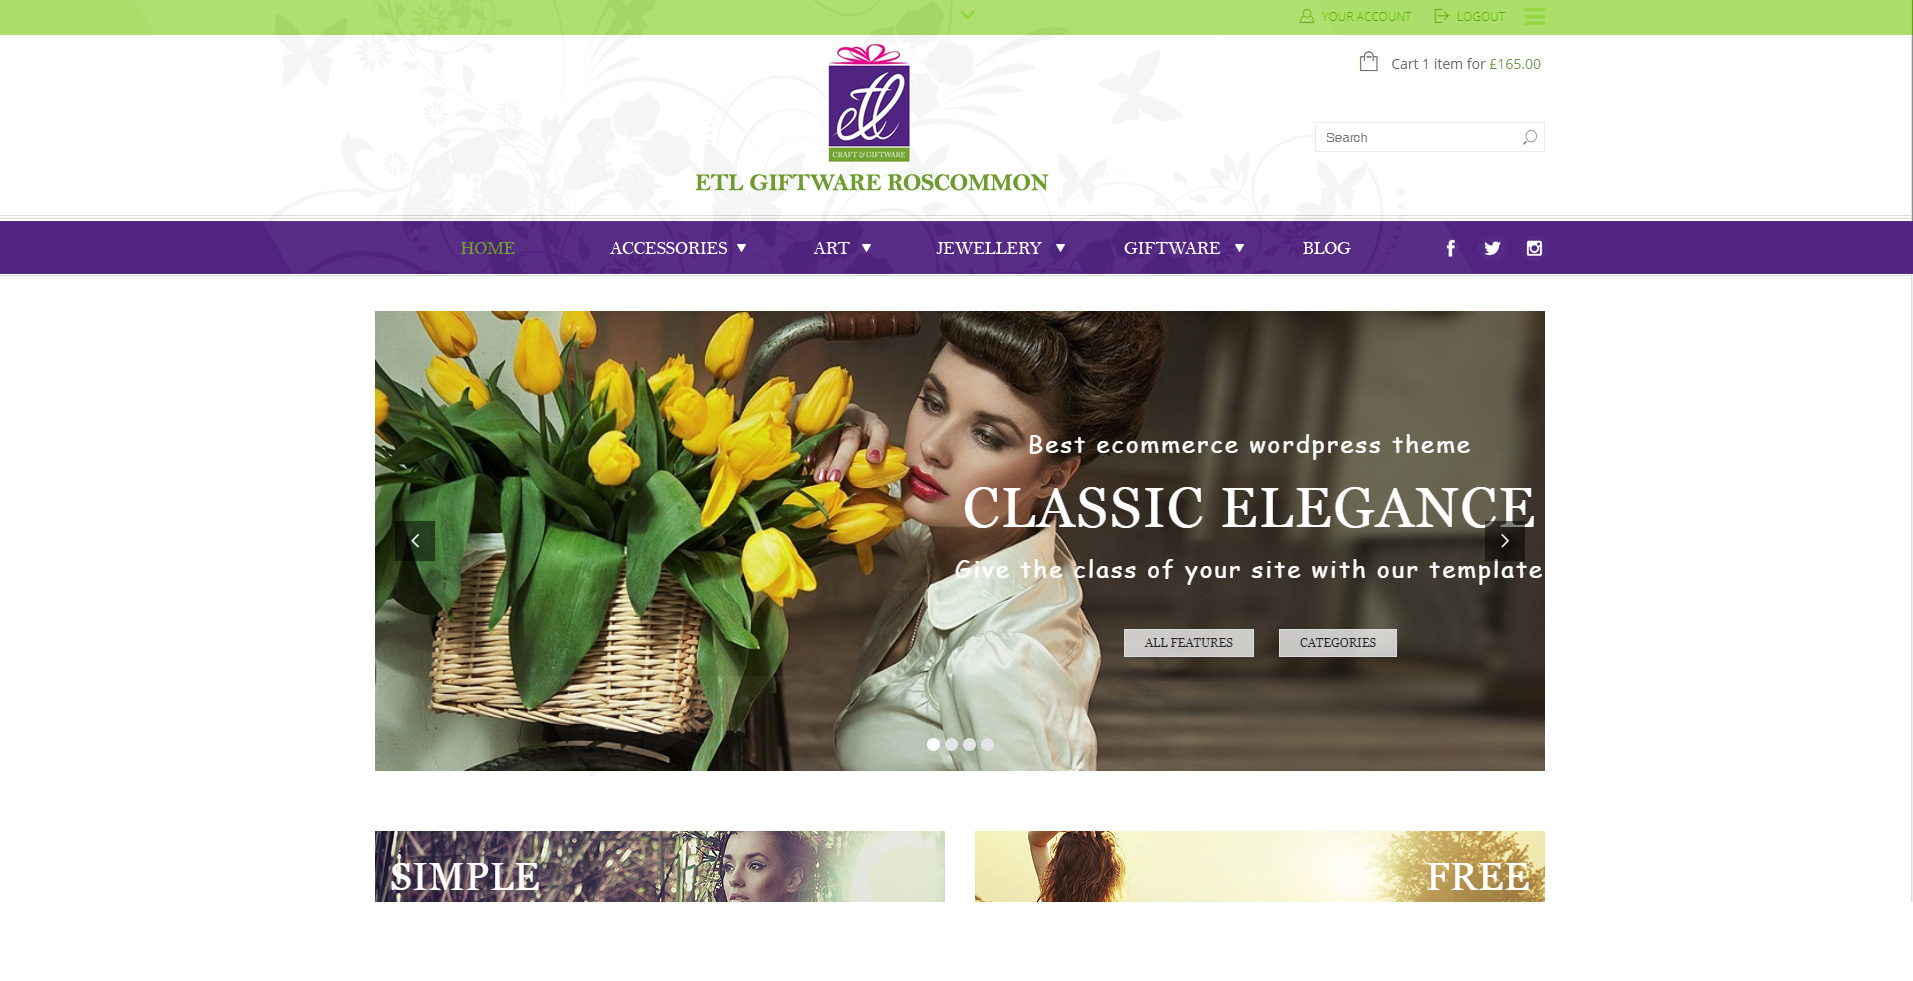 ETL Giftware Roscommon